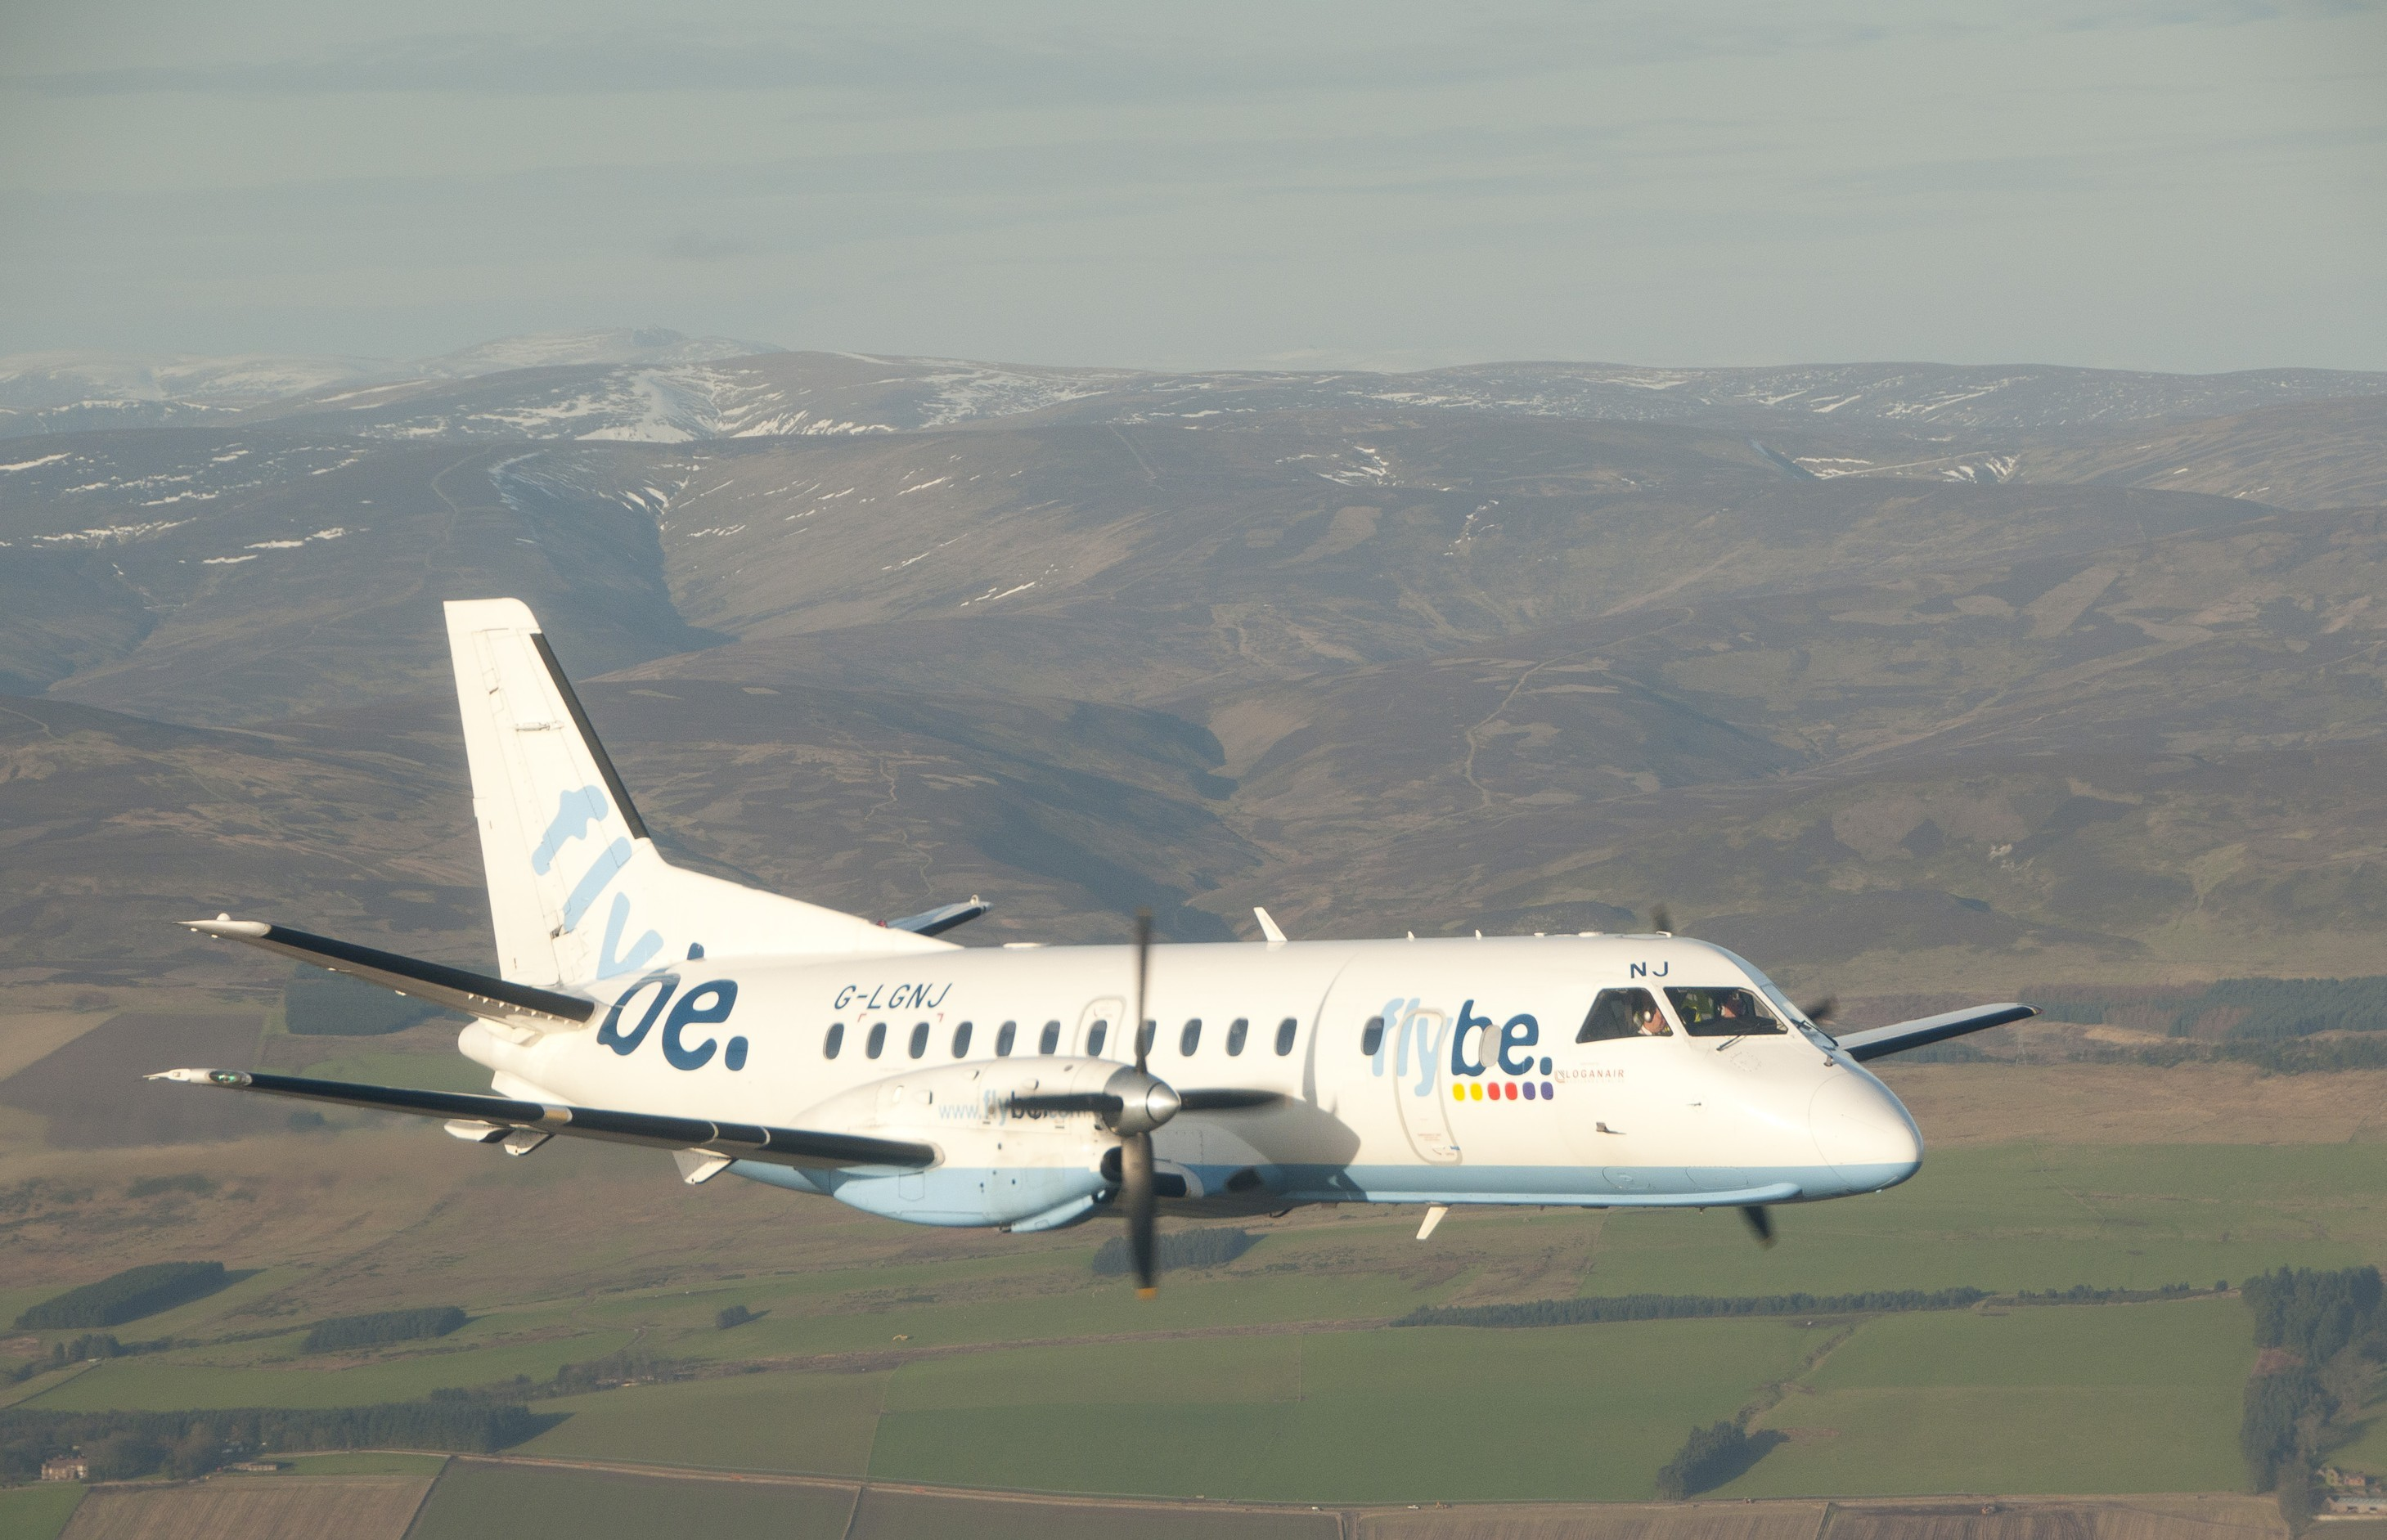 Flybe revenue increased by 8.7% to £623.8million